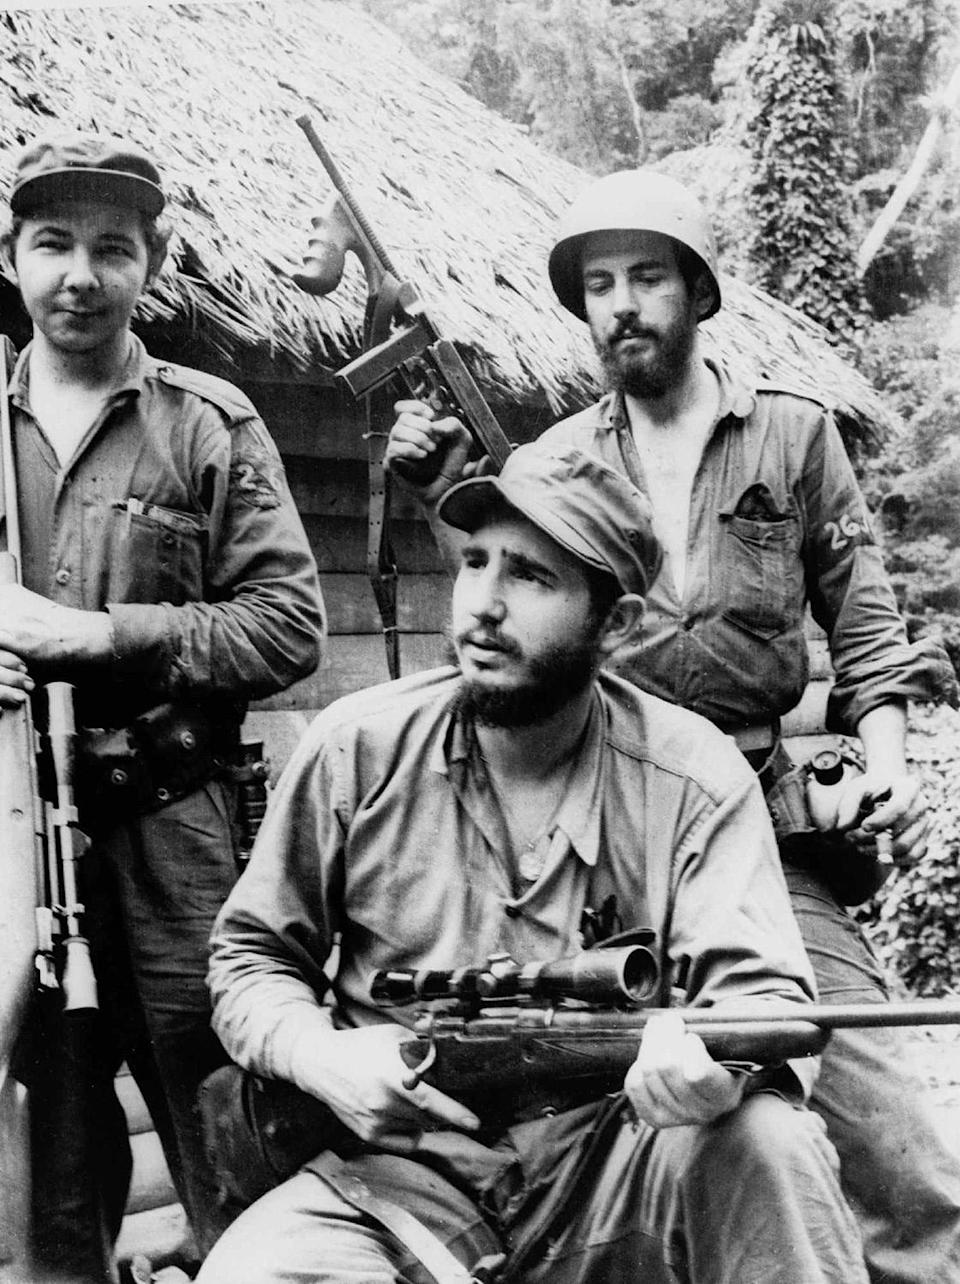 <p>Fidel Castro, the young anti-Batista Guerilla leader, center, is seen with his brother Raul Castro, left, and Camilo Cienfuegos, right, while operating in the Mountains of Eastern Cuba, March 14, 1957. (AP Photo/Andrew St. George </p>